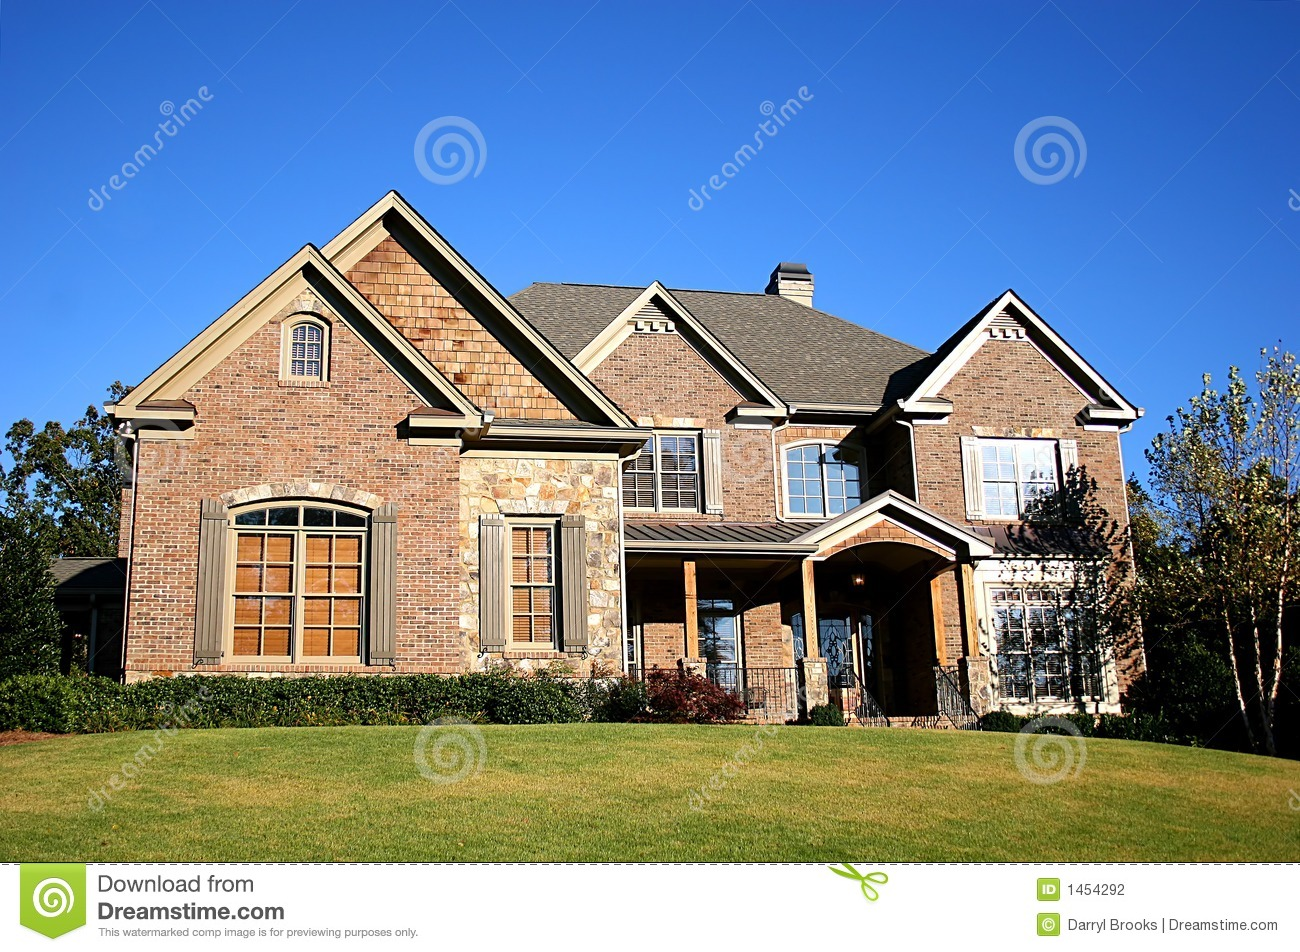 Nice house stock photo image of building estate stately for Nice house images